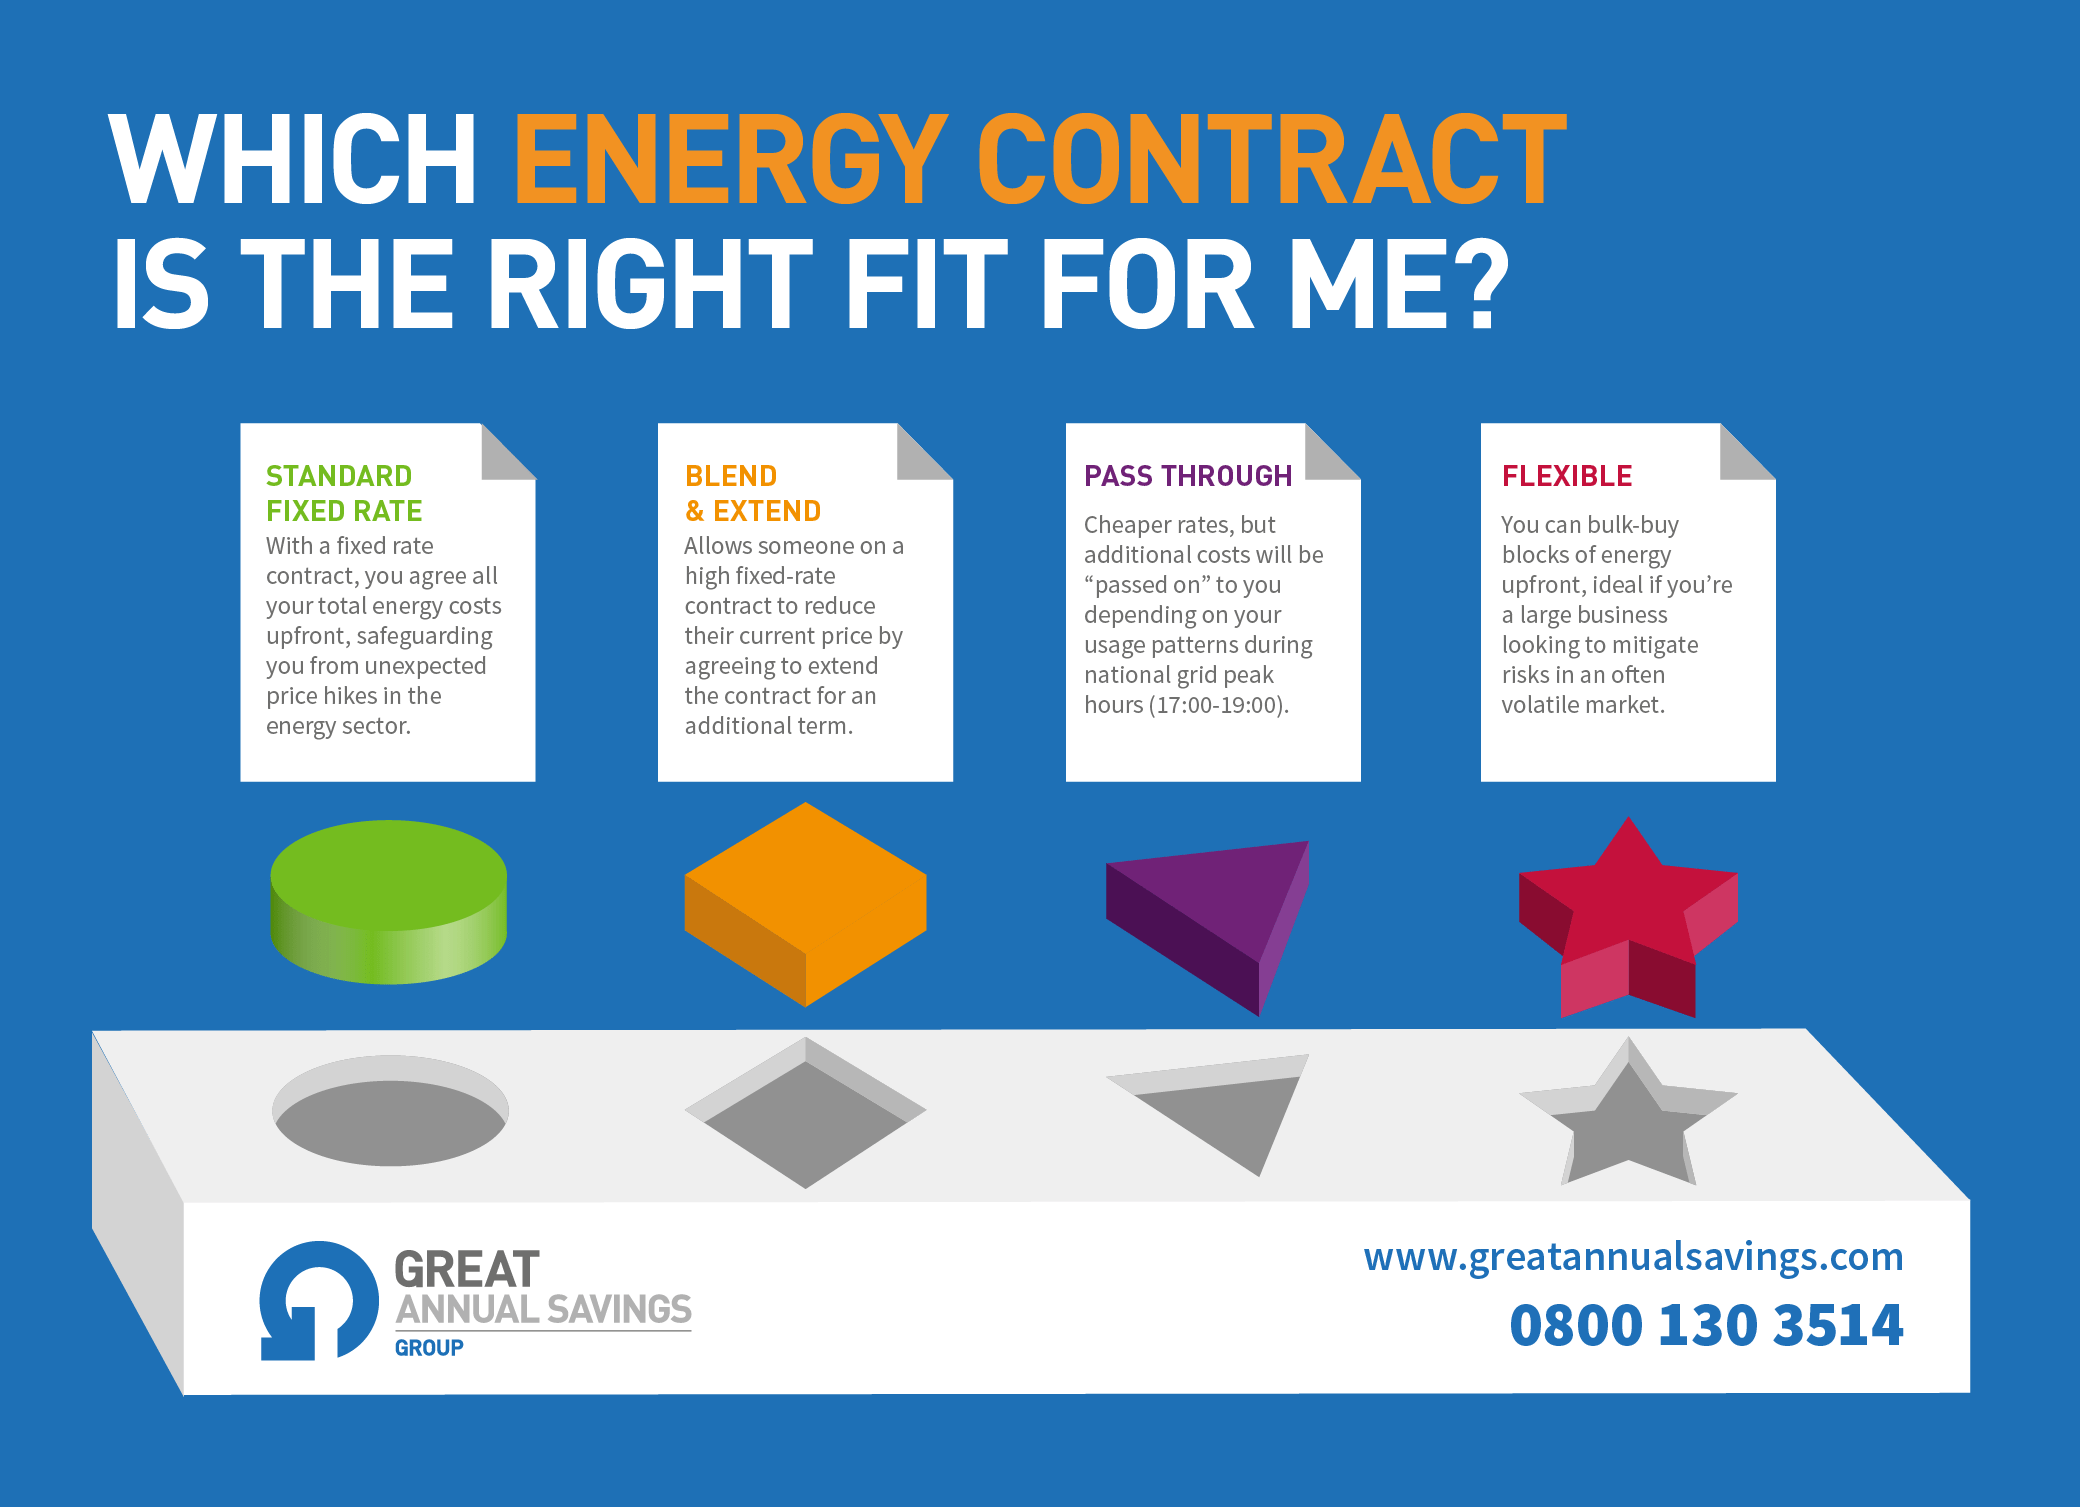 Which energy contract is the right fit for me?